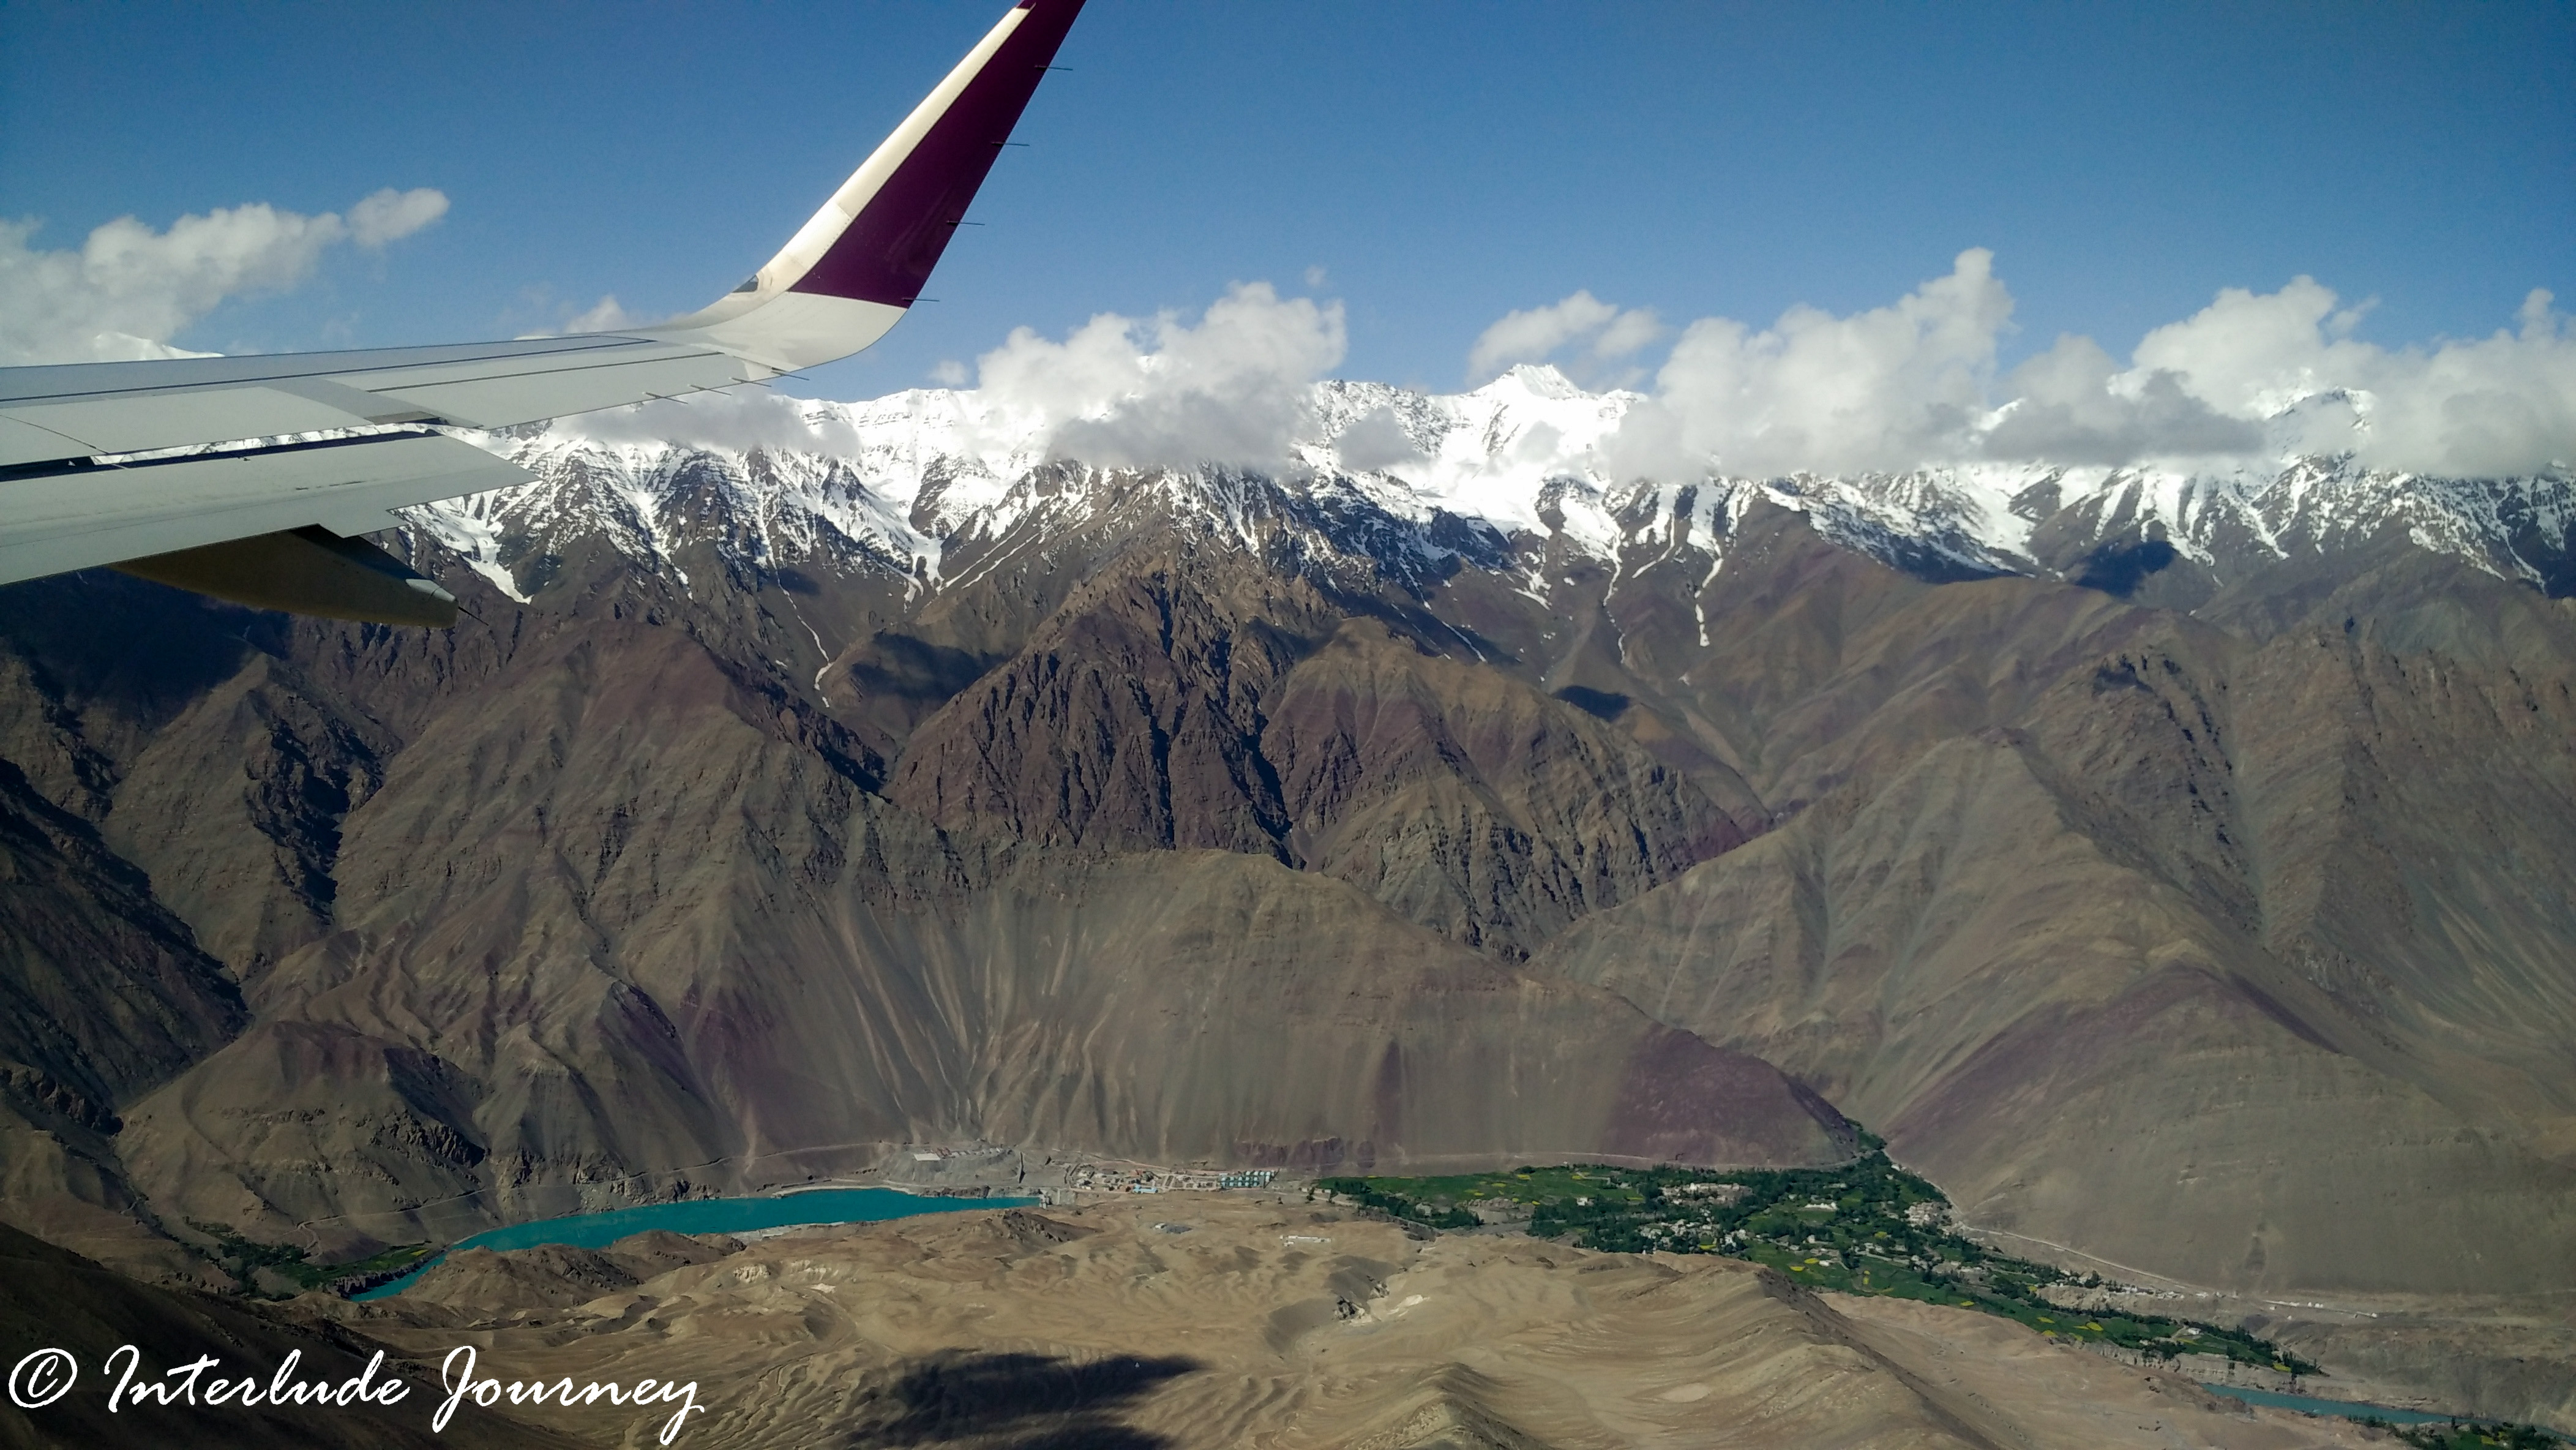 Aerial view of ladakh - taken from flight